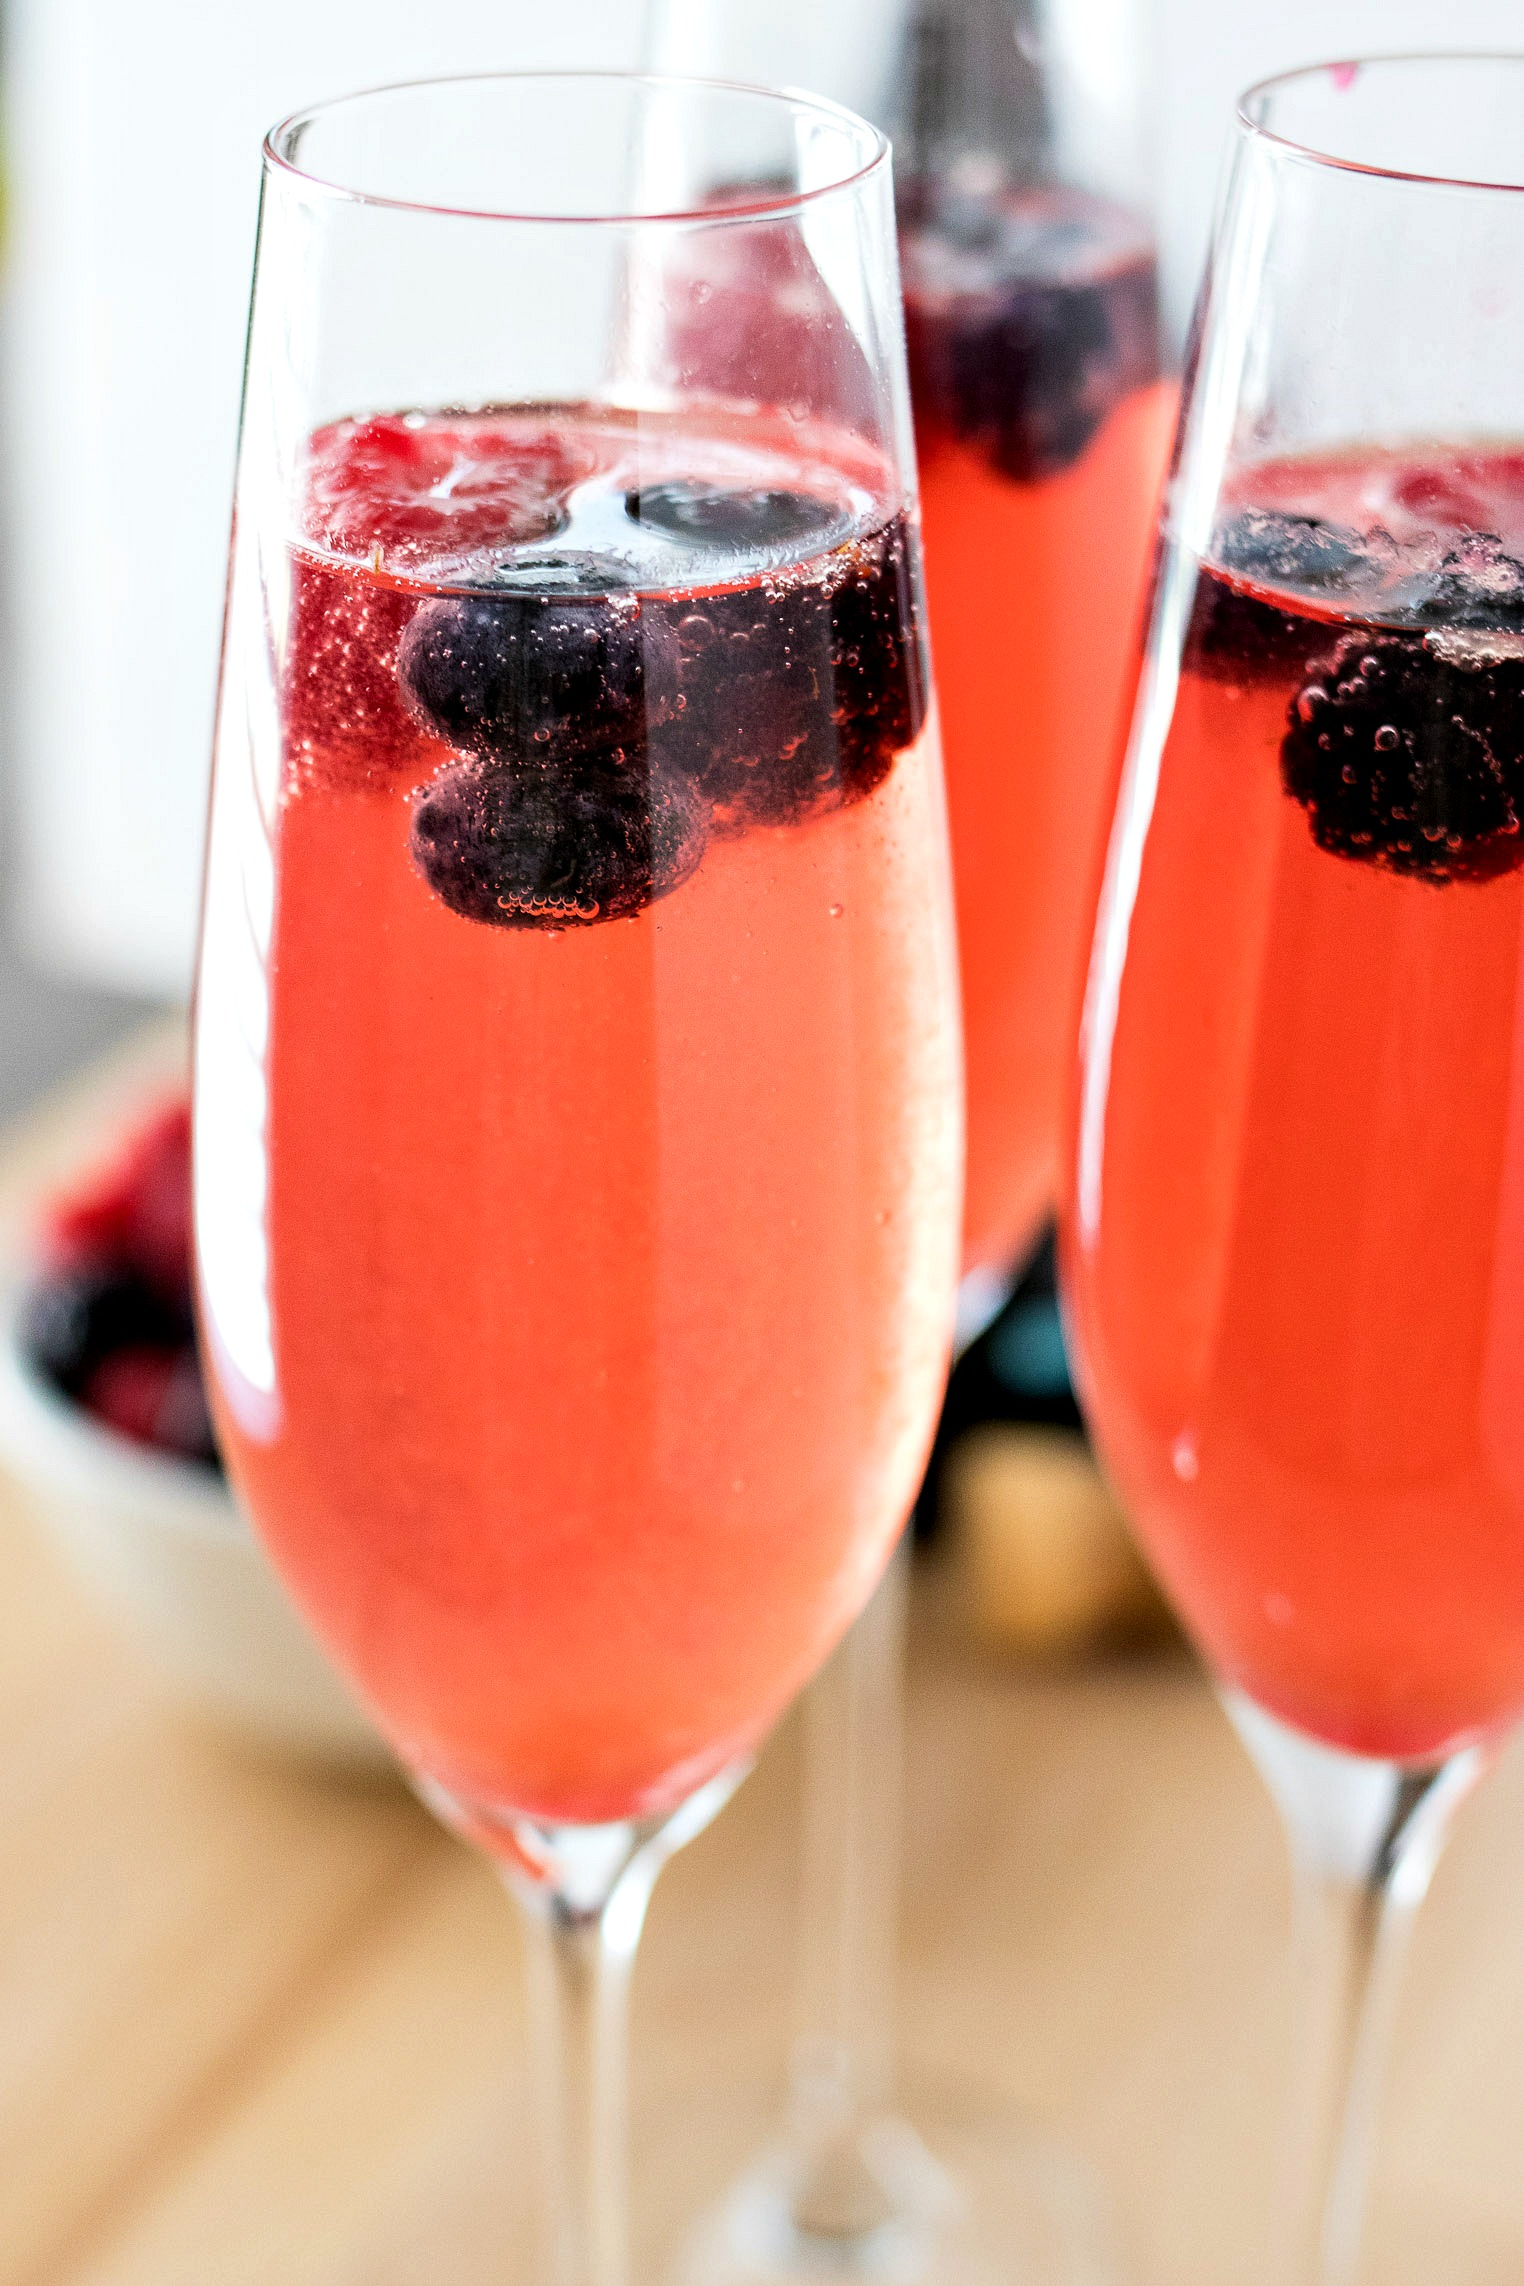 Berry Mimosas - A refreshing and simple mimosa made with mixed berry simple syrup and prosecco or champagne. Garnish with a few berries and you've got yourself the perfect drink for summer!